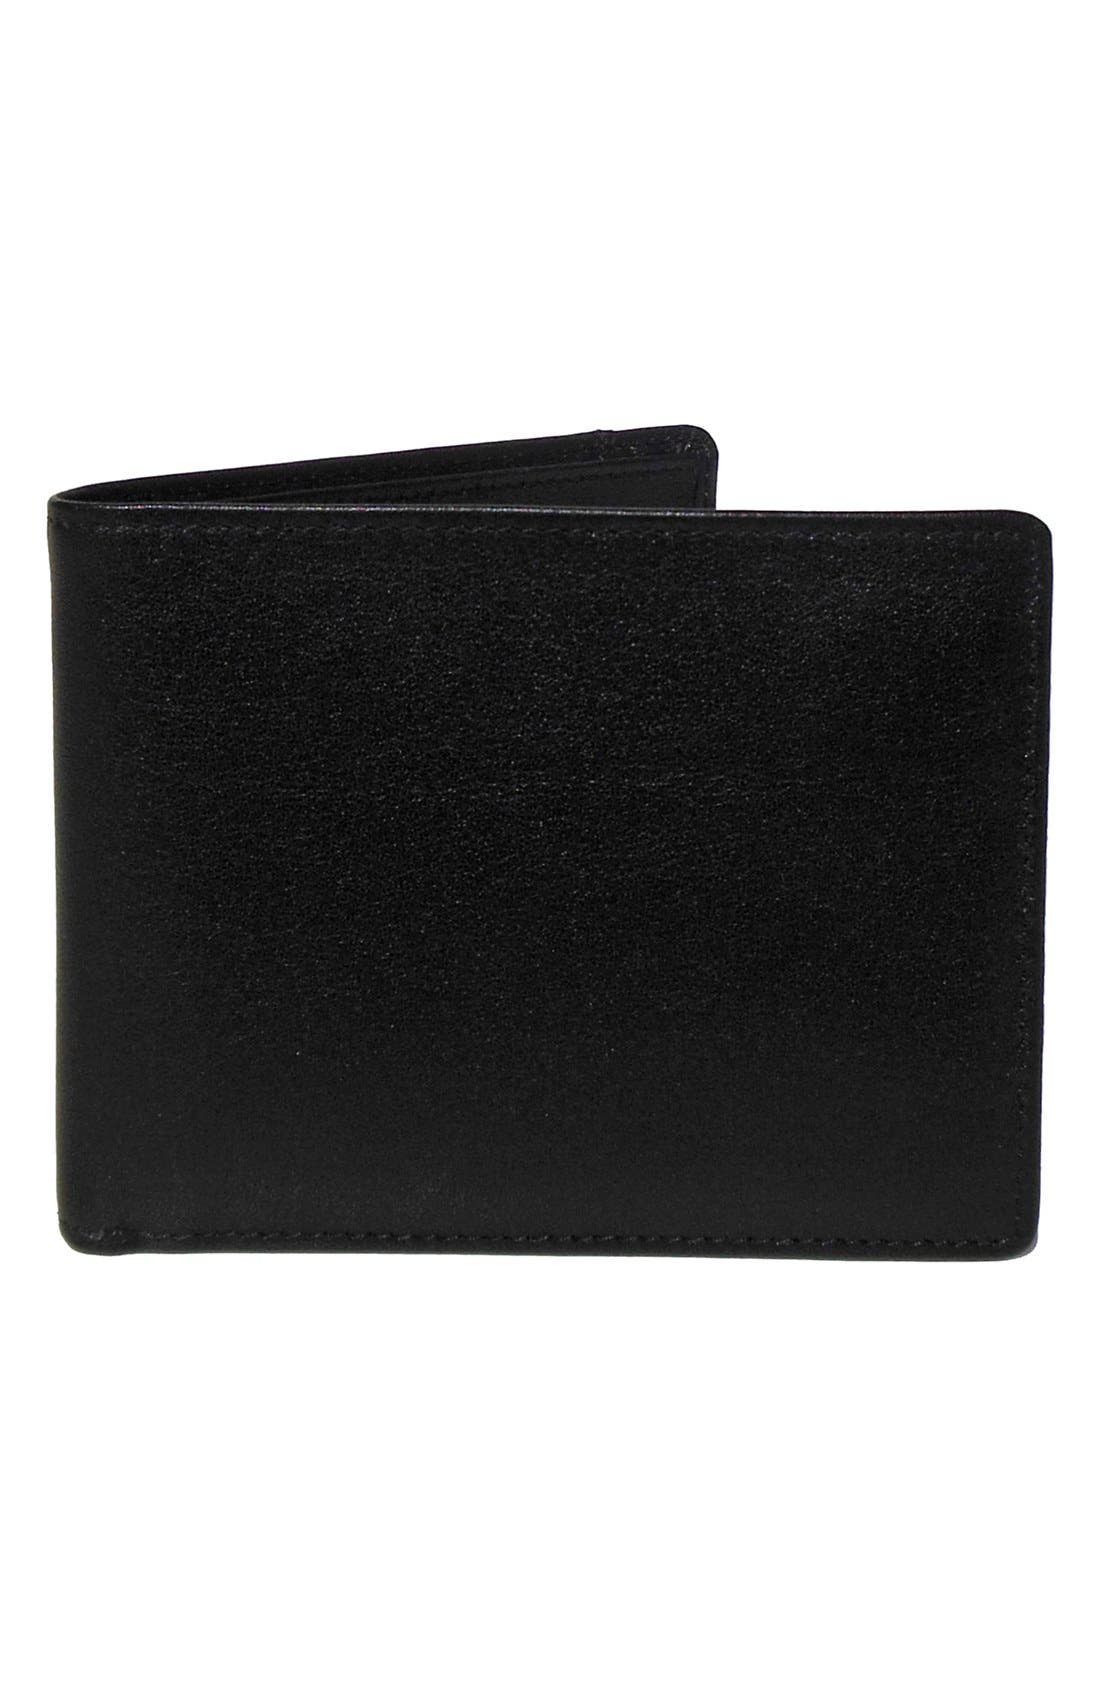 BOCONI 'Grant' RFID Blocker Removable Passcase Leather Wallet